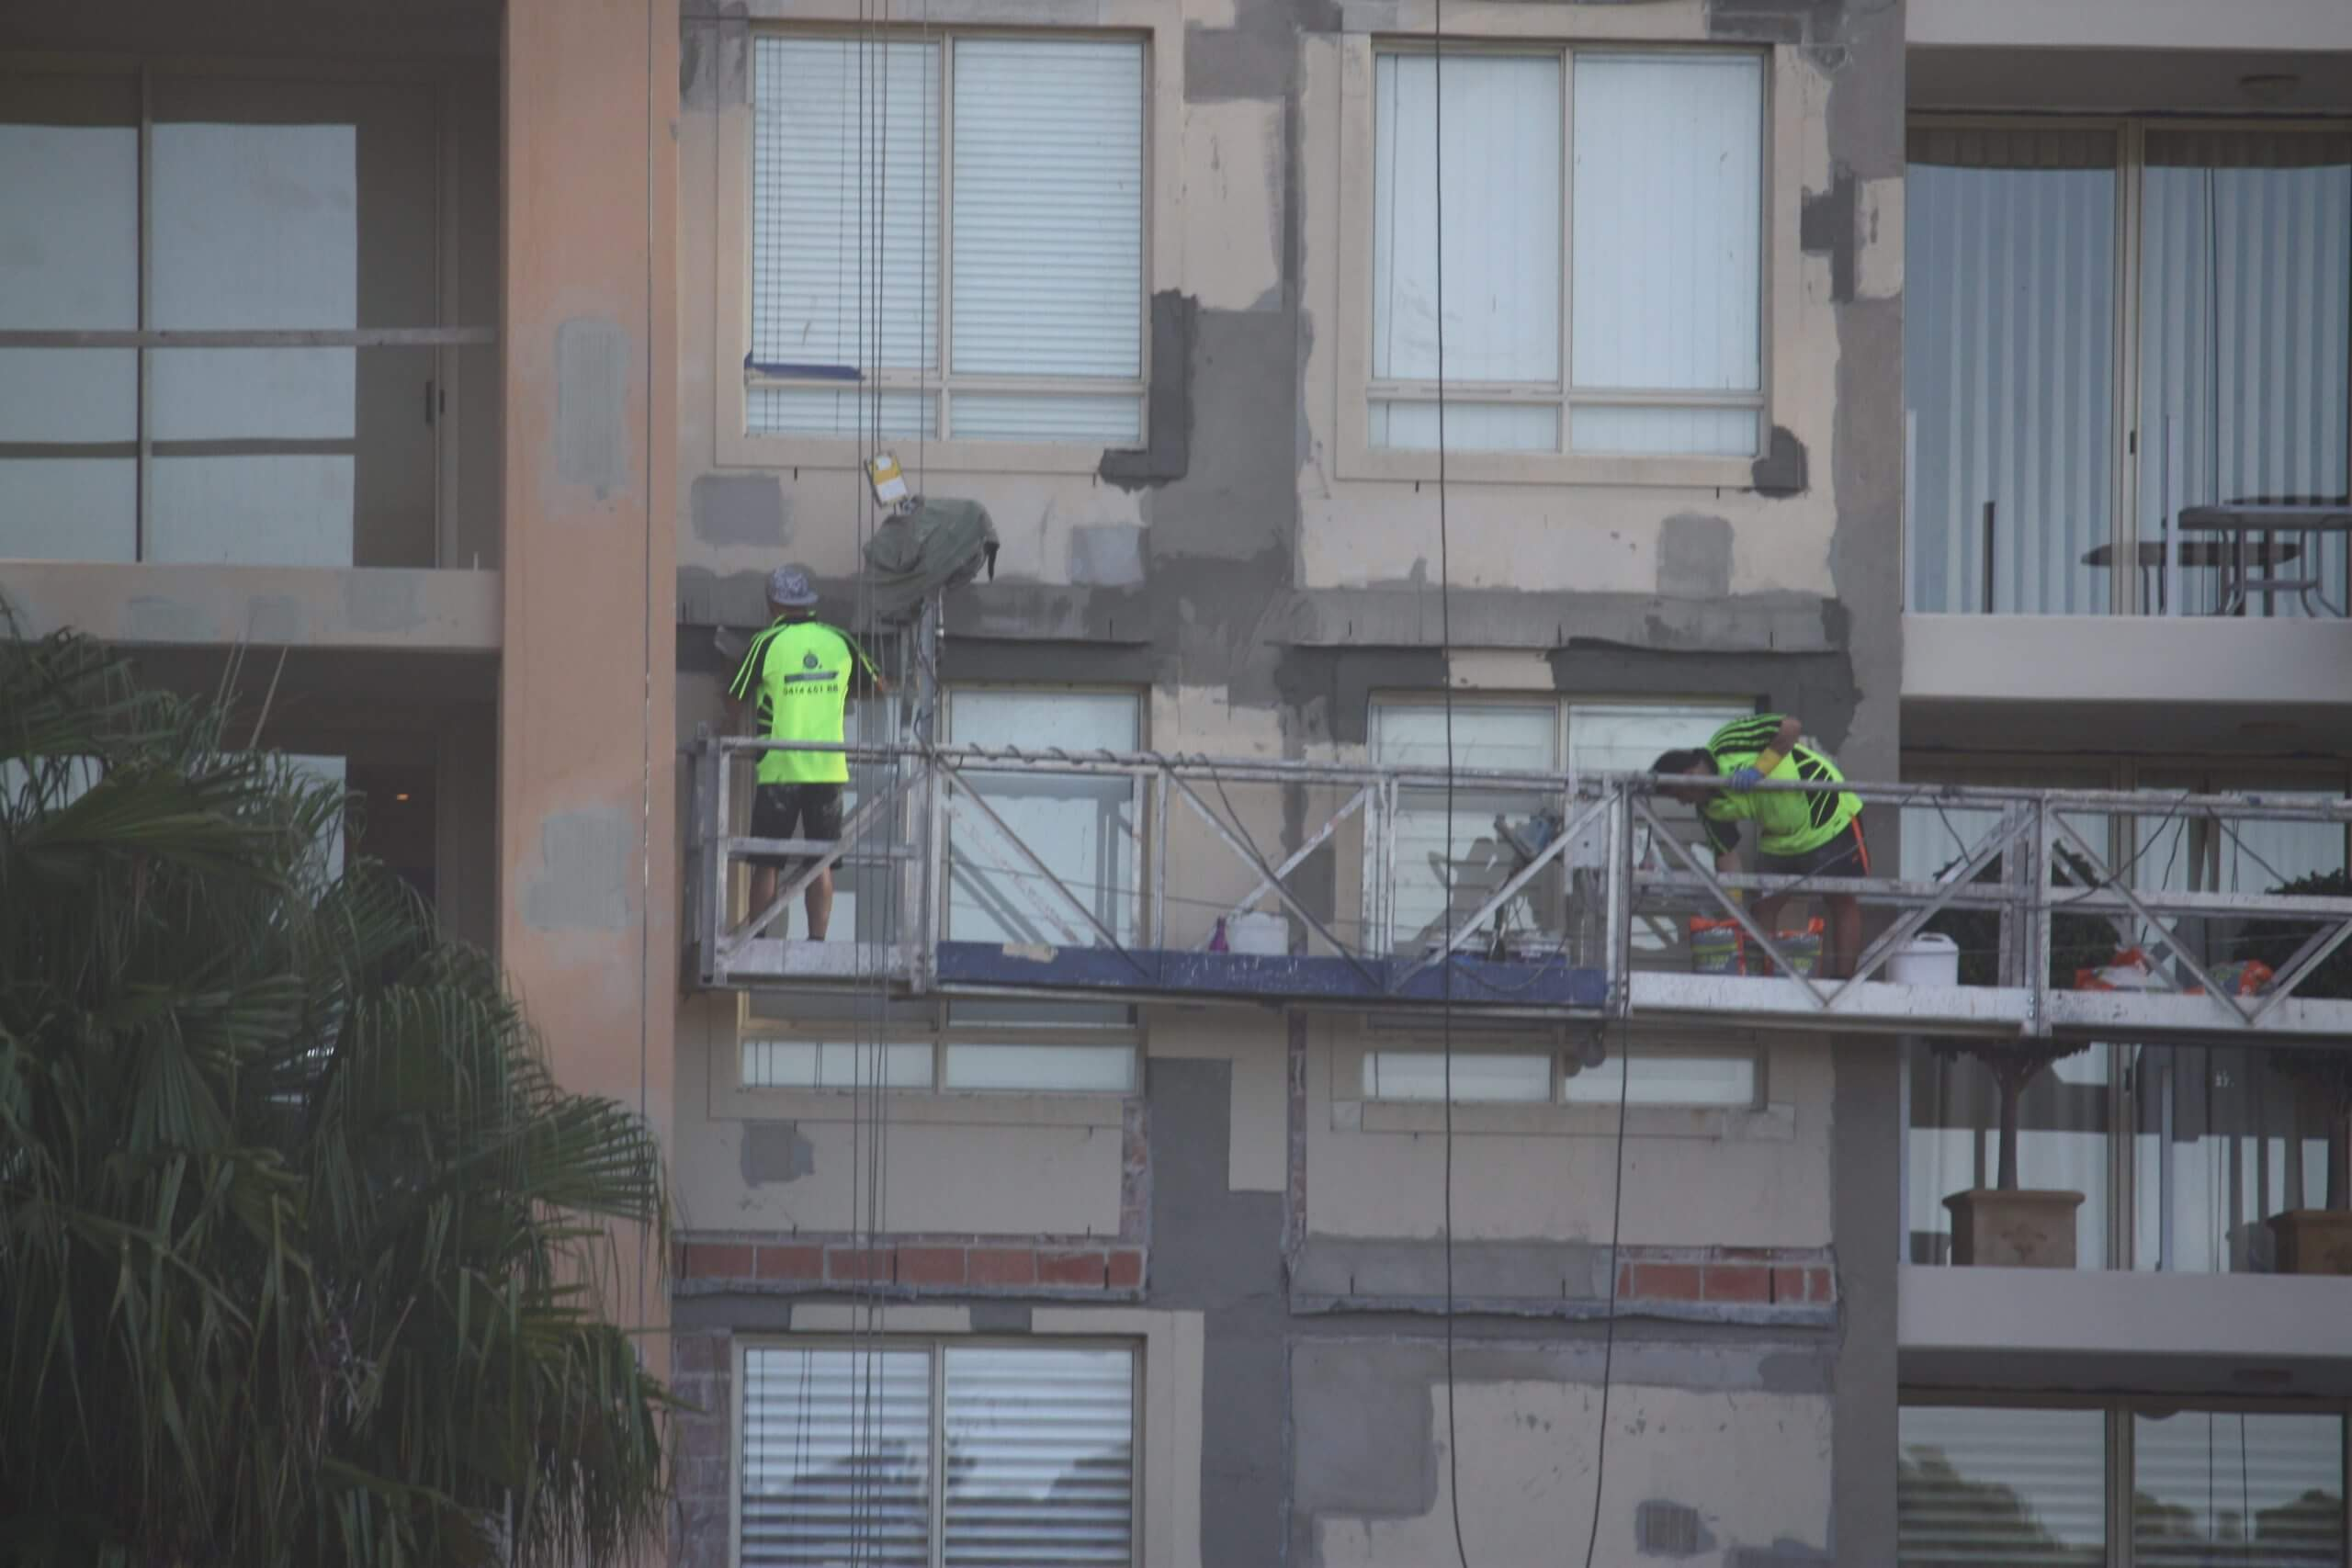 Two Builders On Scaffolding - Water Leakage Problem In Building - Remedial Building Services